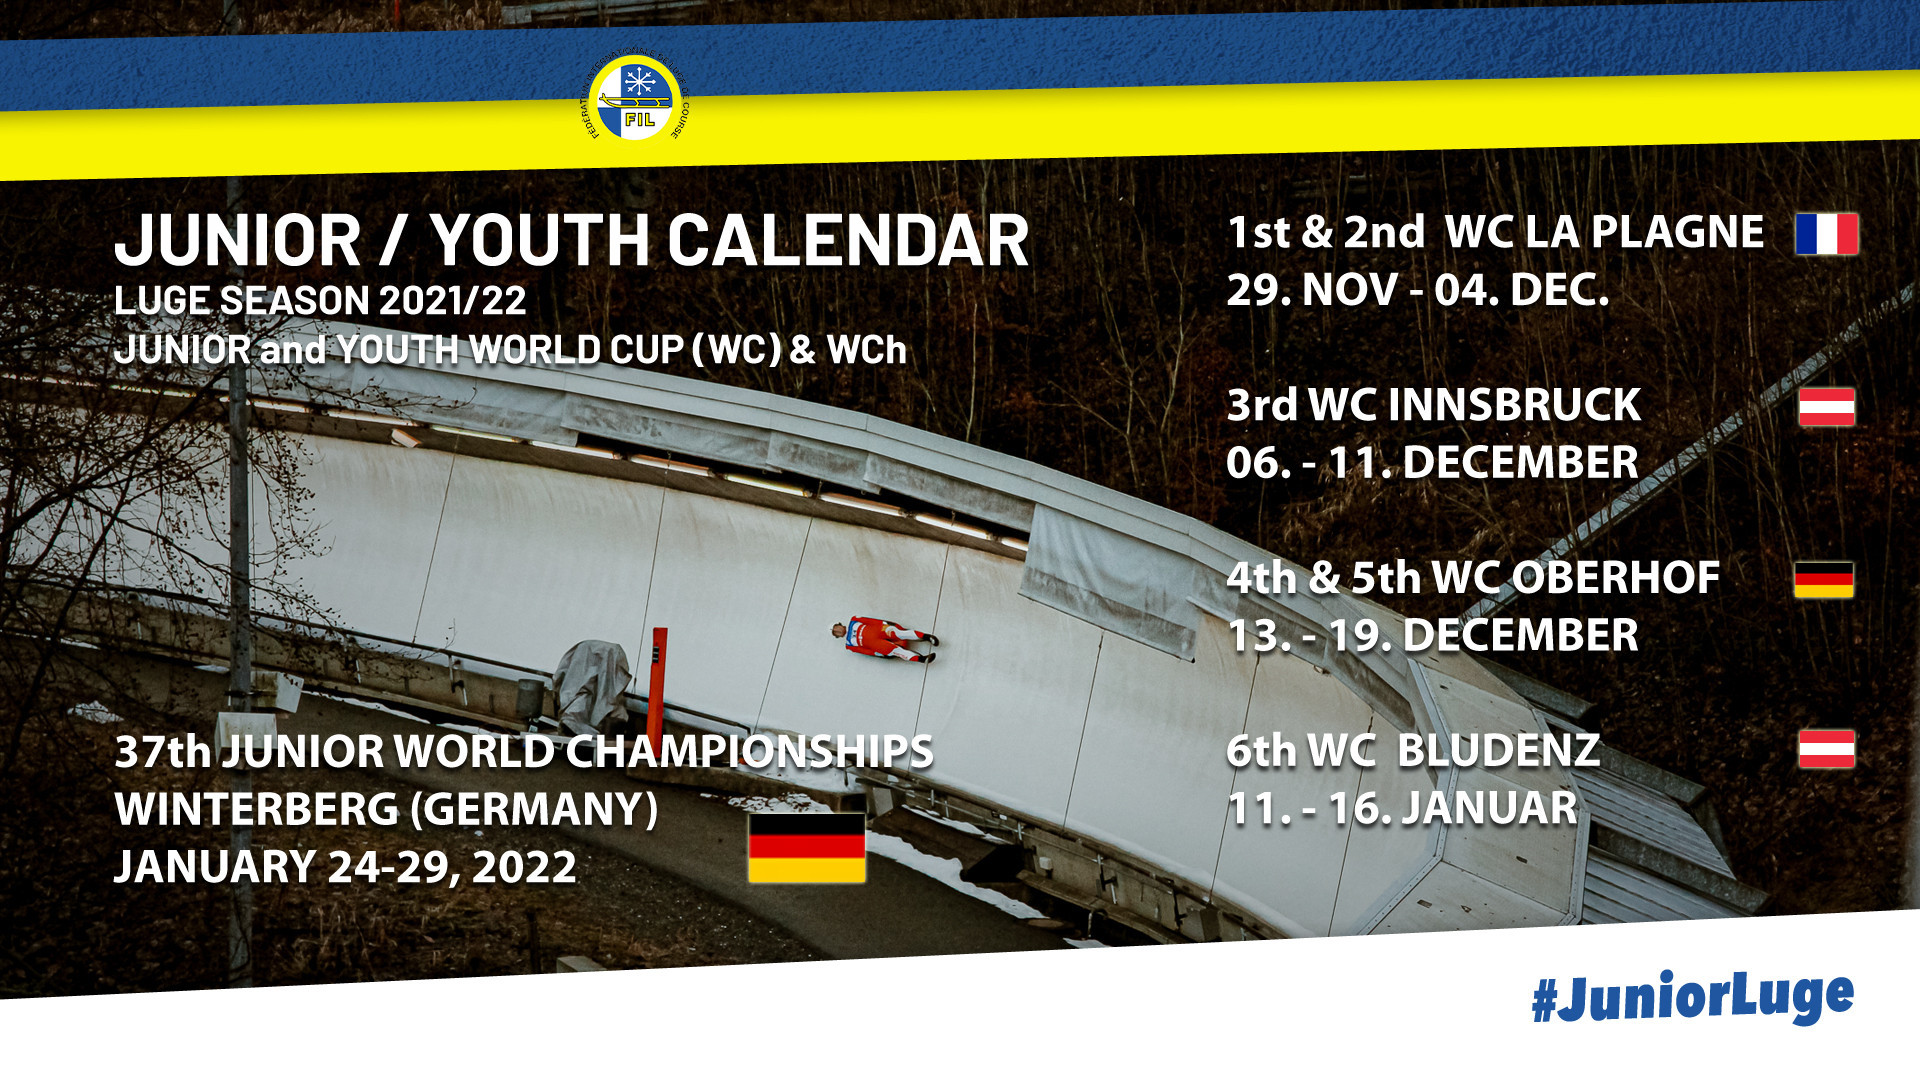 Six Junior and Youth World Cup stops have been scheduled by the International Luge Federation ©FIL